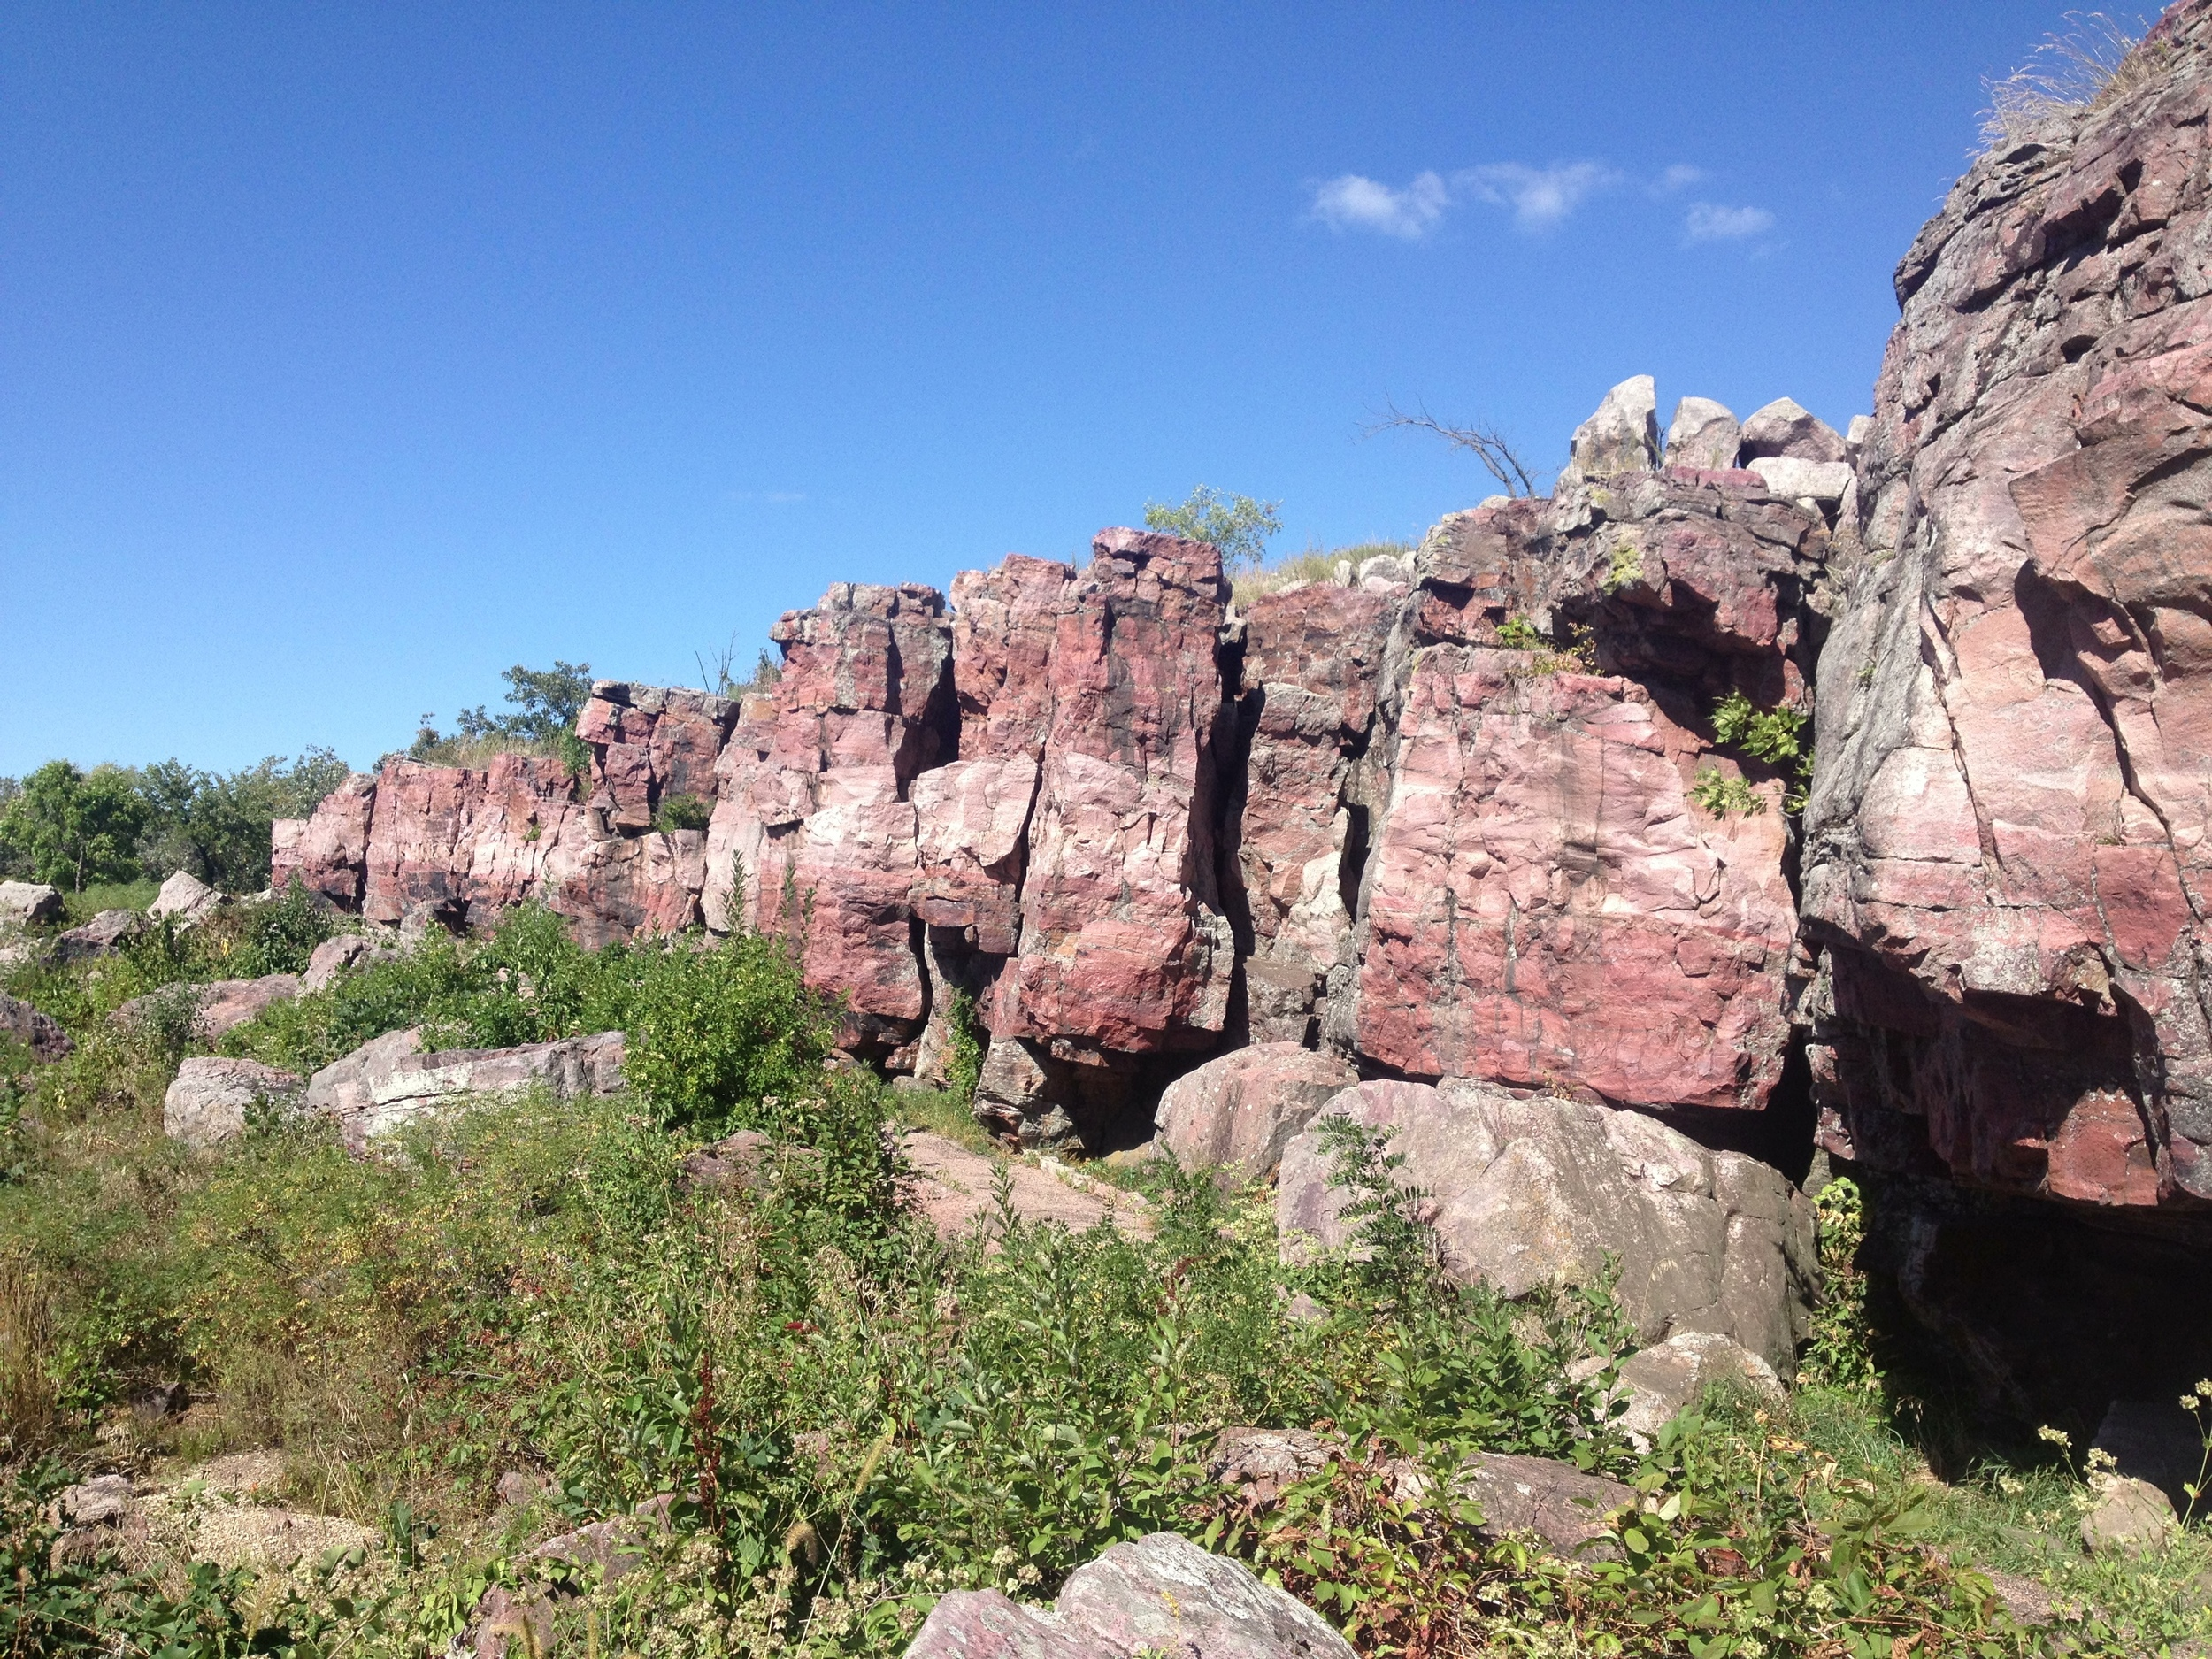 The Cliffs of Pipestone National Monument